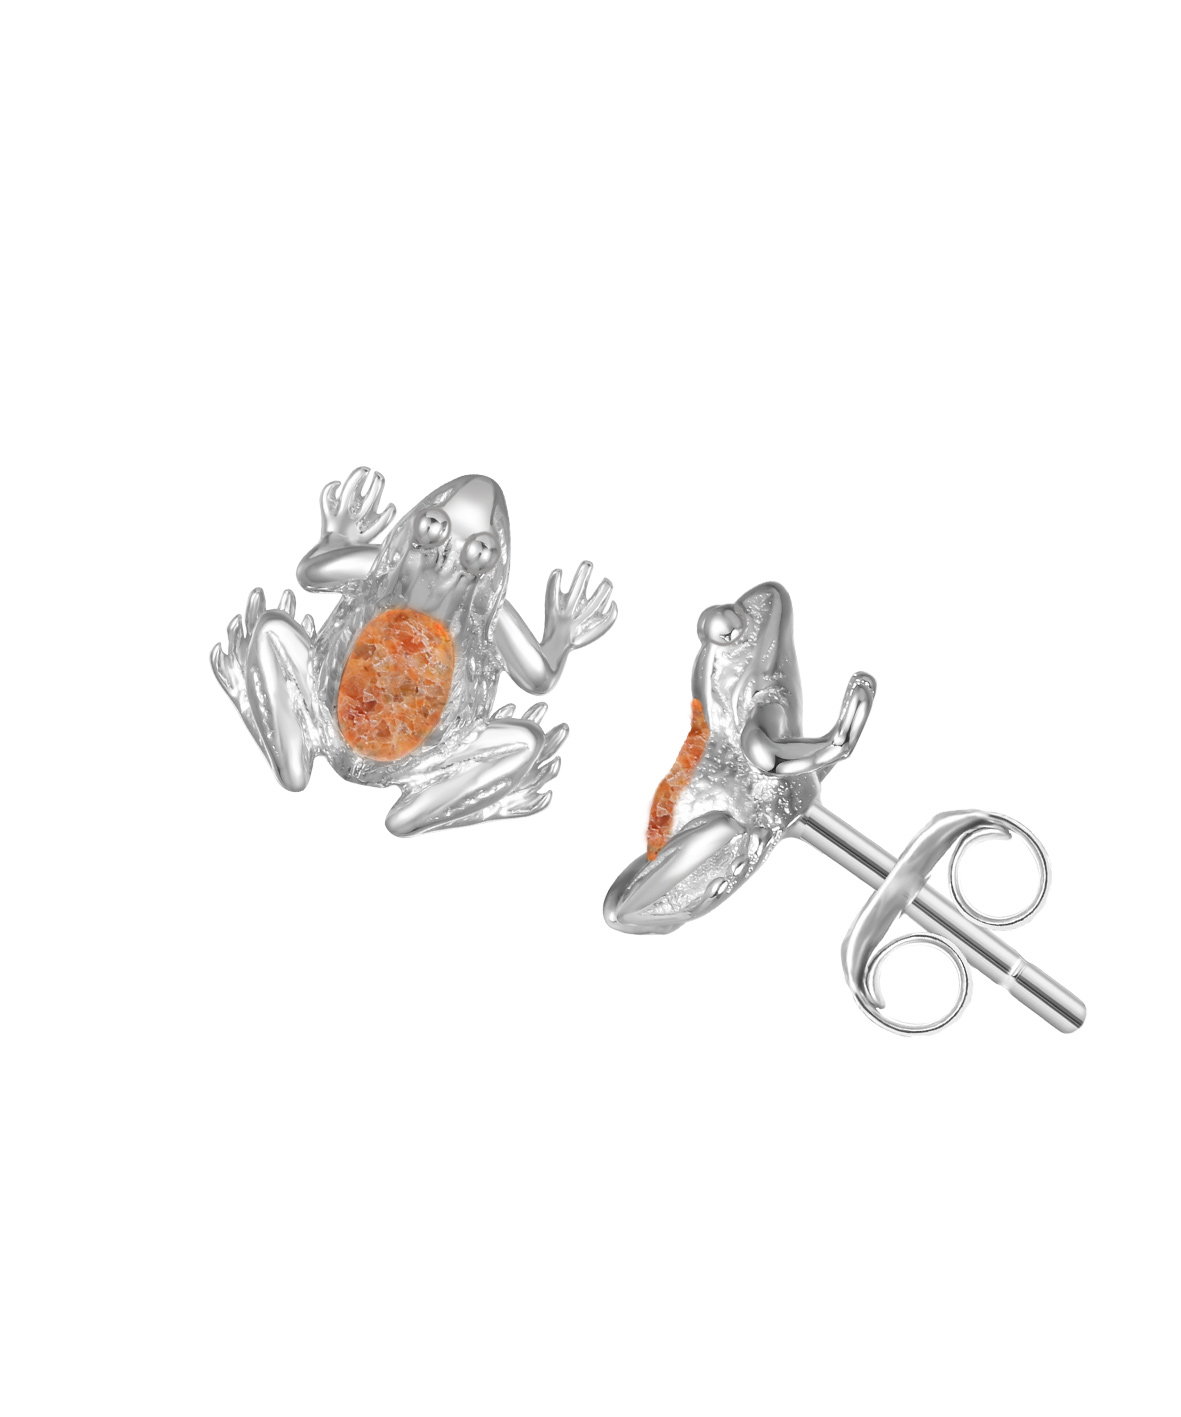 Jersey Crapaud Stud Earrings